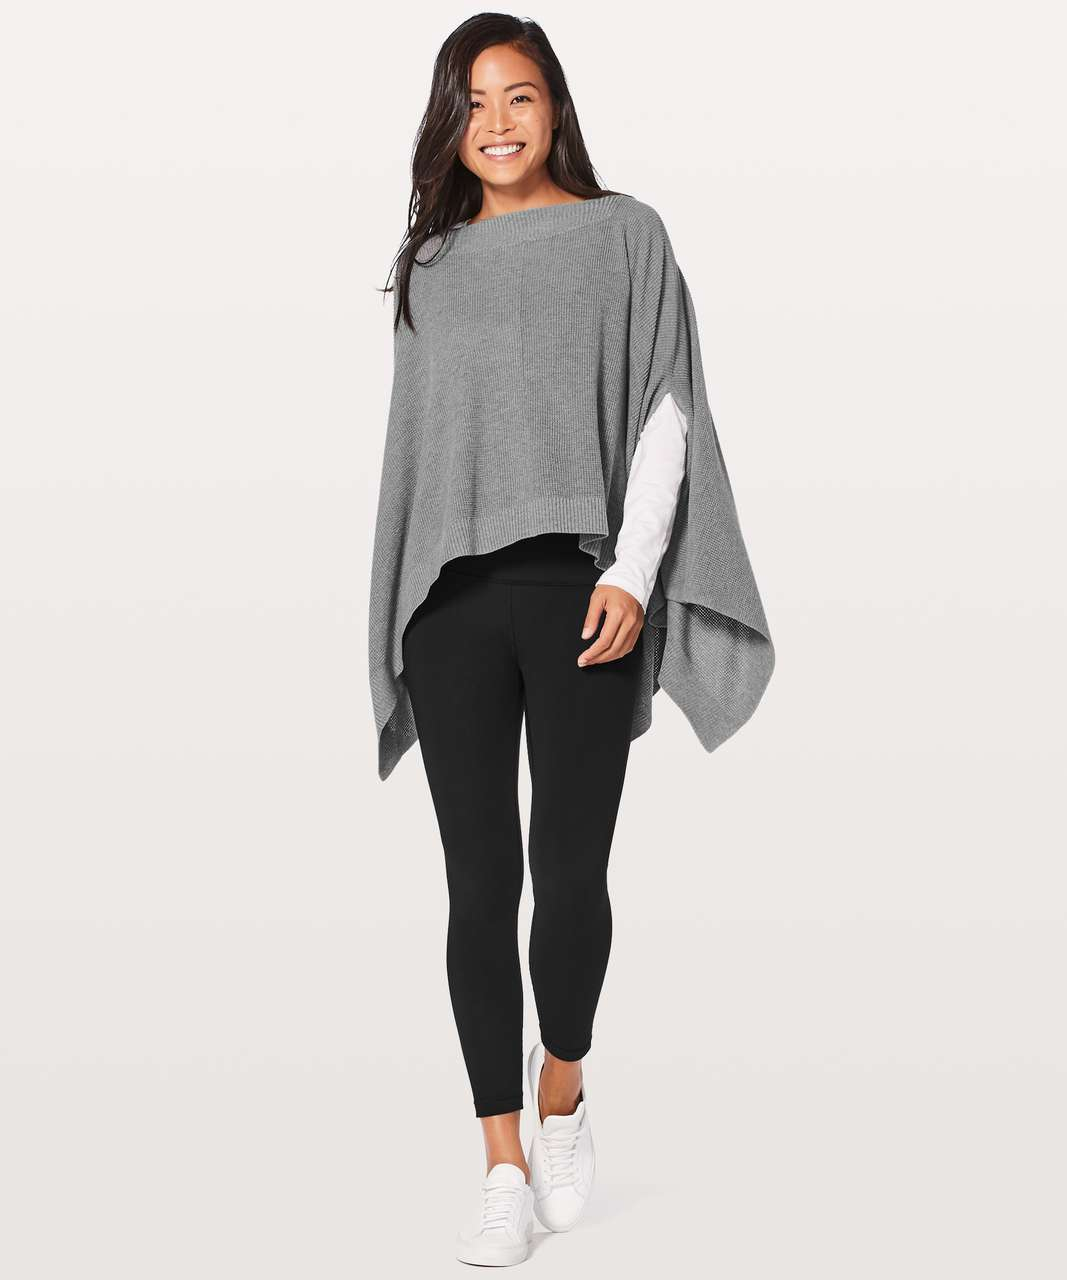 Lululemon Forward Flow Cape - Heathered Core Medium Grey